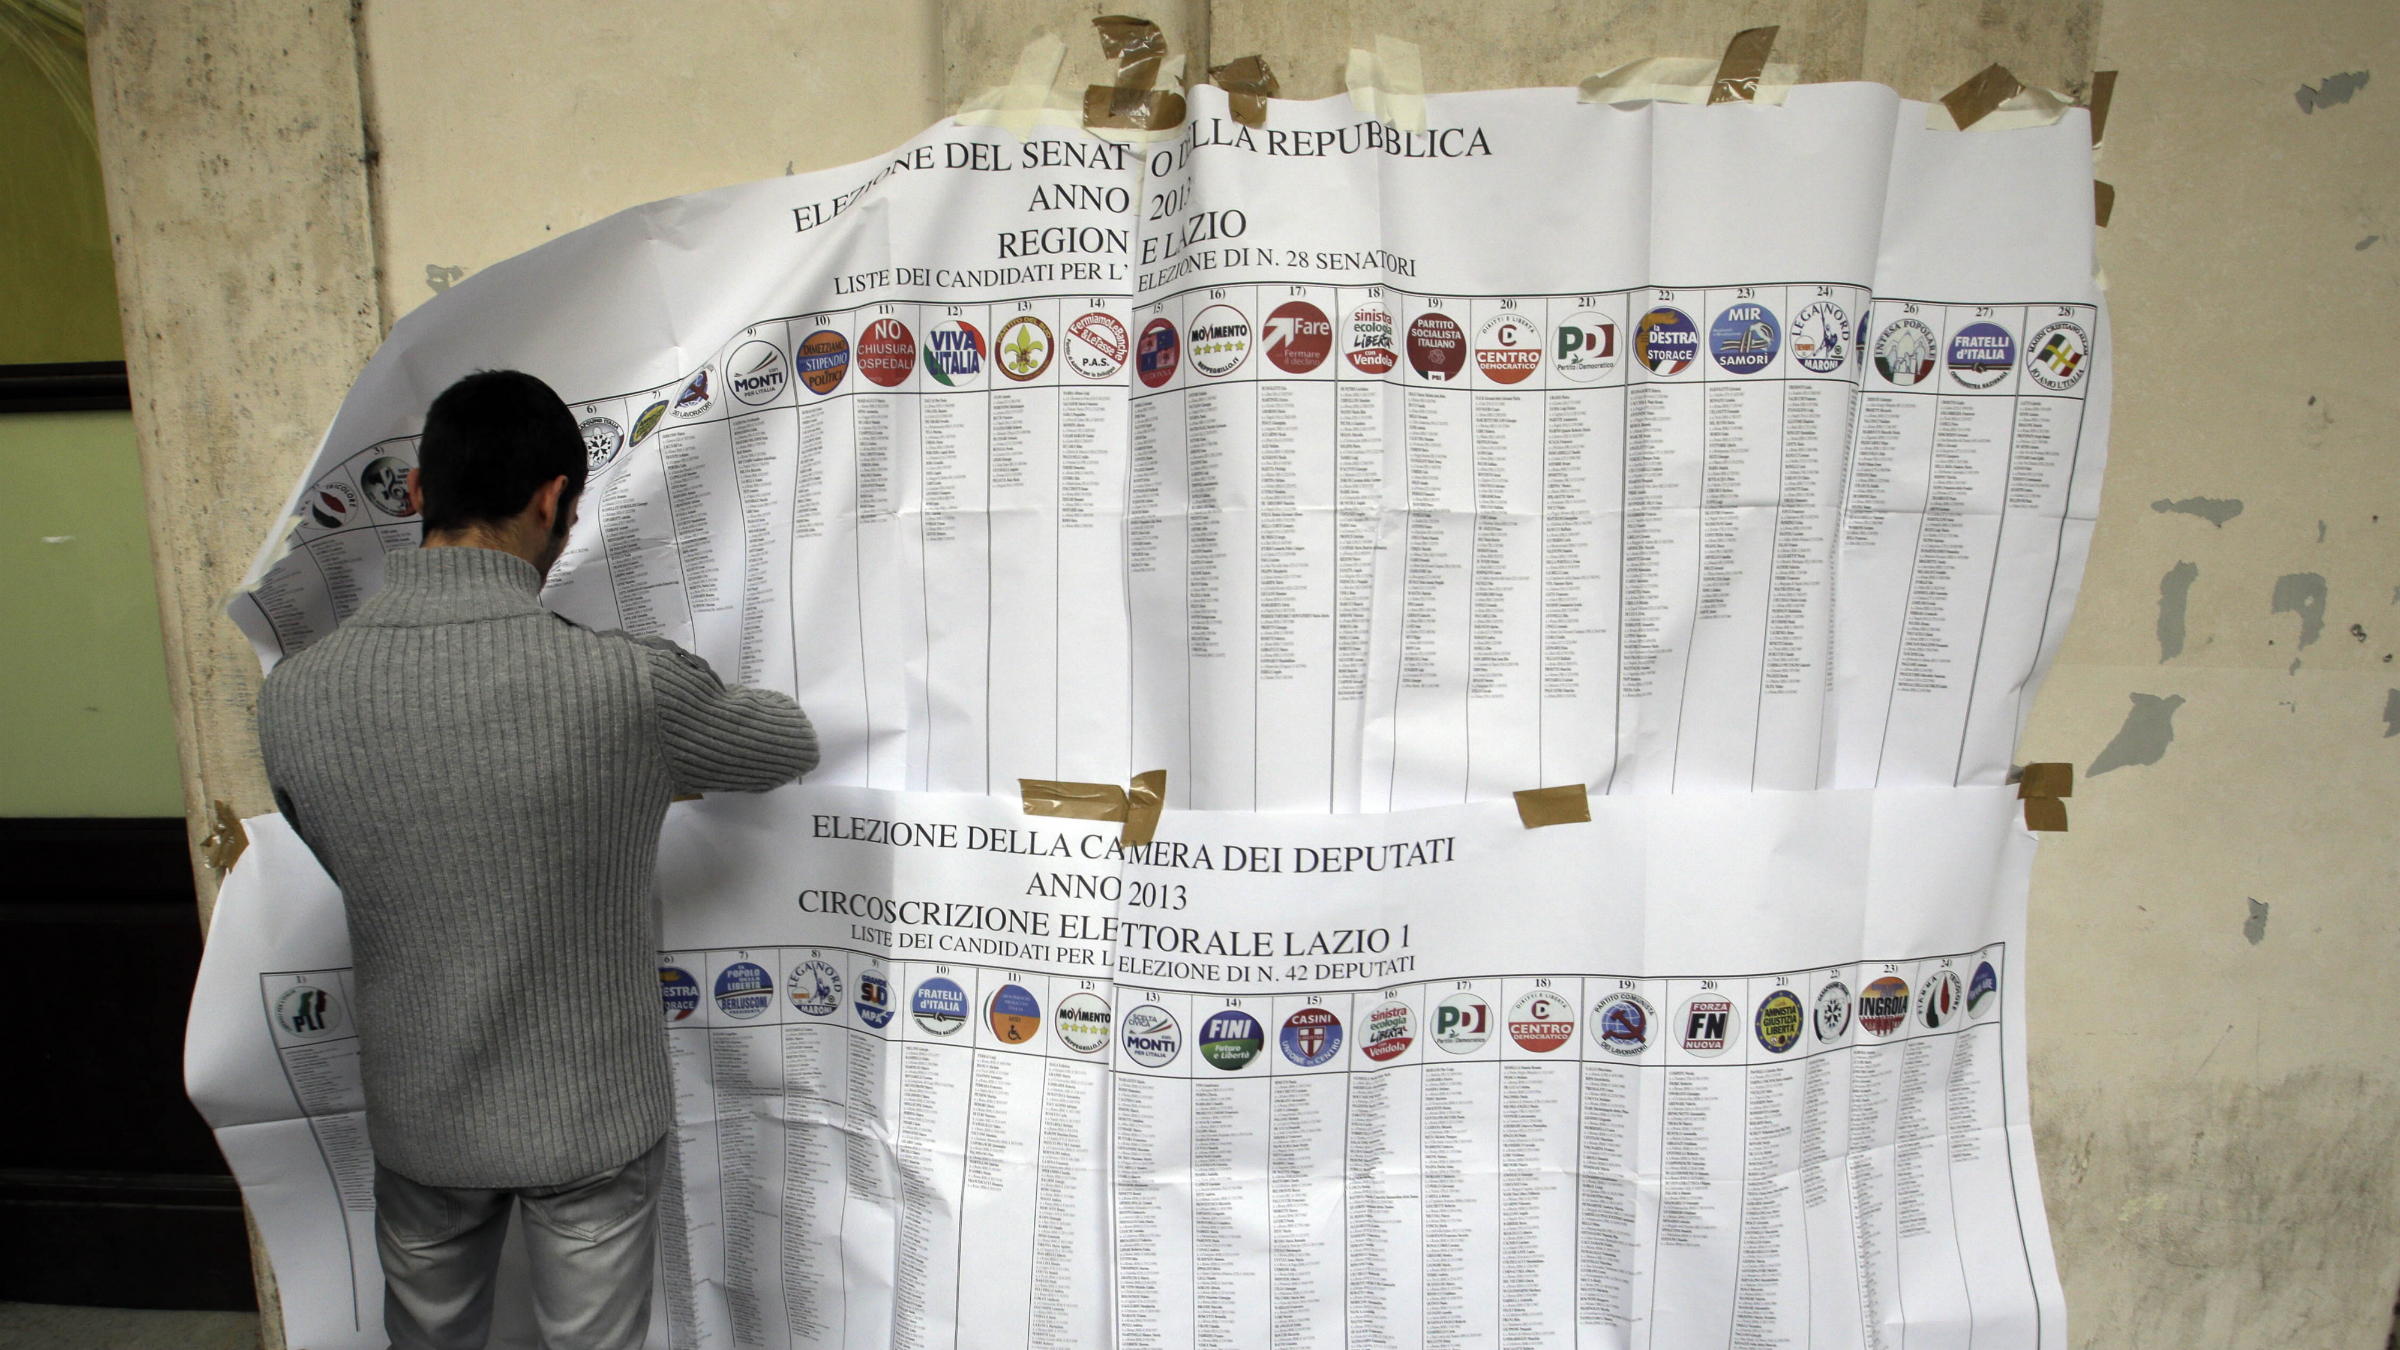 Lists of candidates are removed at a polling station in Rome, Monday, Feb. 25, 2013. Italy's crucial elections appear to be heading toward gridlock, initial results show, with the center-left forces of Pier Luigi Bersani headed toward victory in the lower house of Parliament and the camp of former premier Silvio Berlusconi gaining the upper hand in the equally powerful Senate. The upstart protest campaign of comic-turned-politician Beppe Grillo was also showing a stunningly strong result in both houses of the legislature, confirming its surprise role as a force in Italian politics.